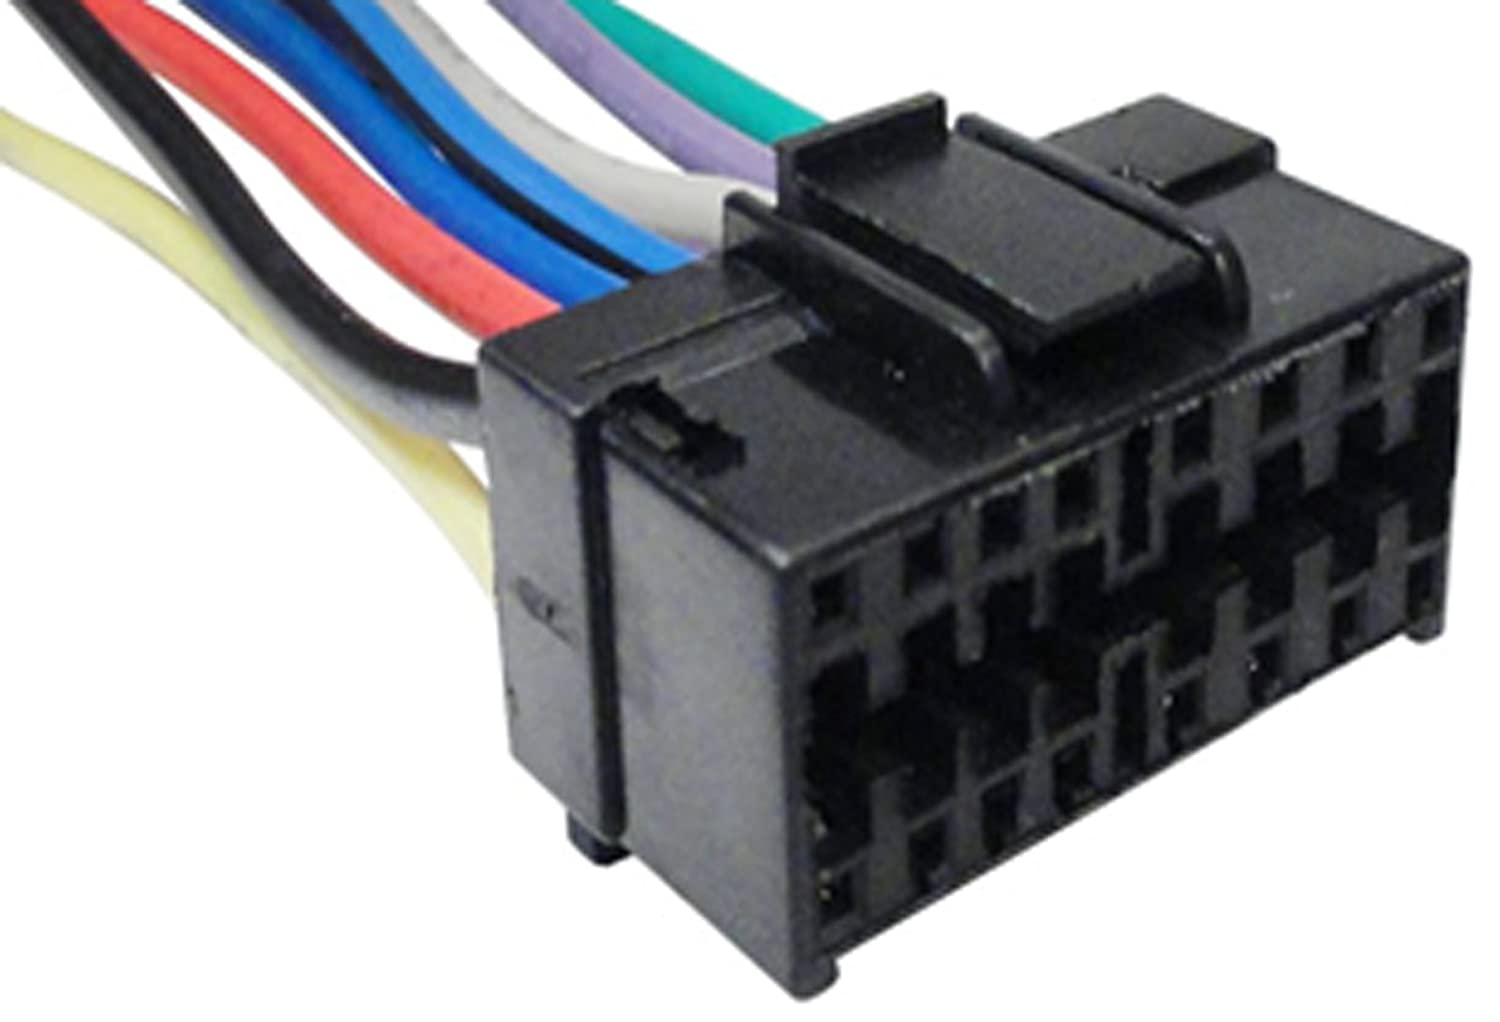 61PGr49b4wL._SL1500_ amazon com sony wiring harness 16 pin copper sy16 automotive sony 16 pin wiring harness at gsmportal.co